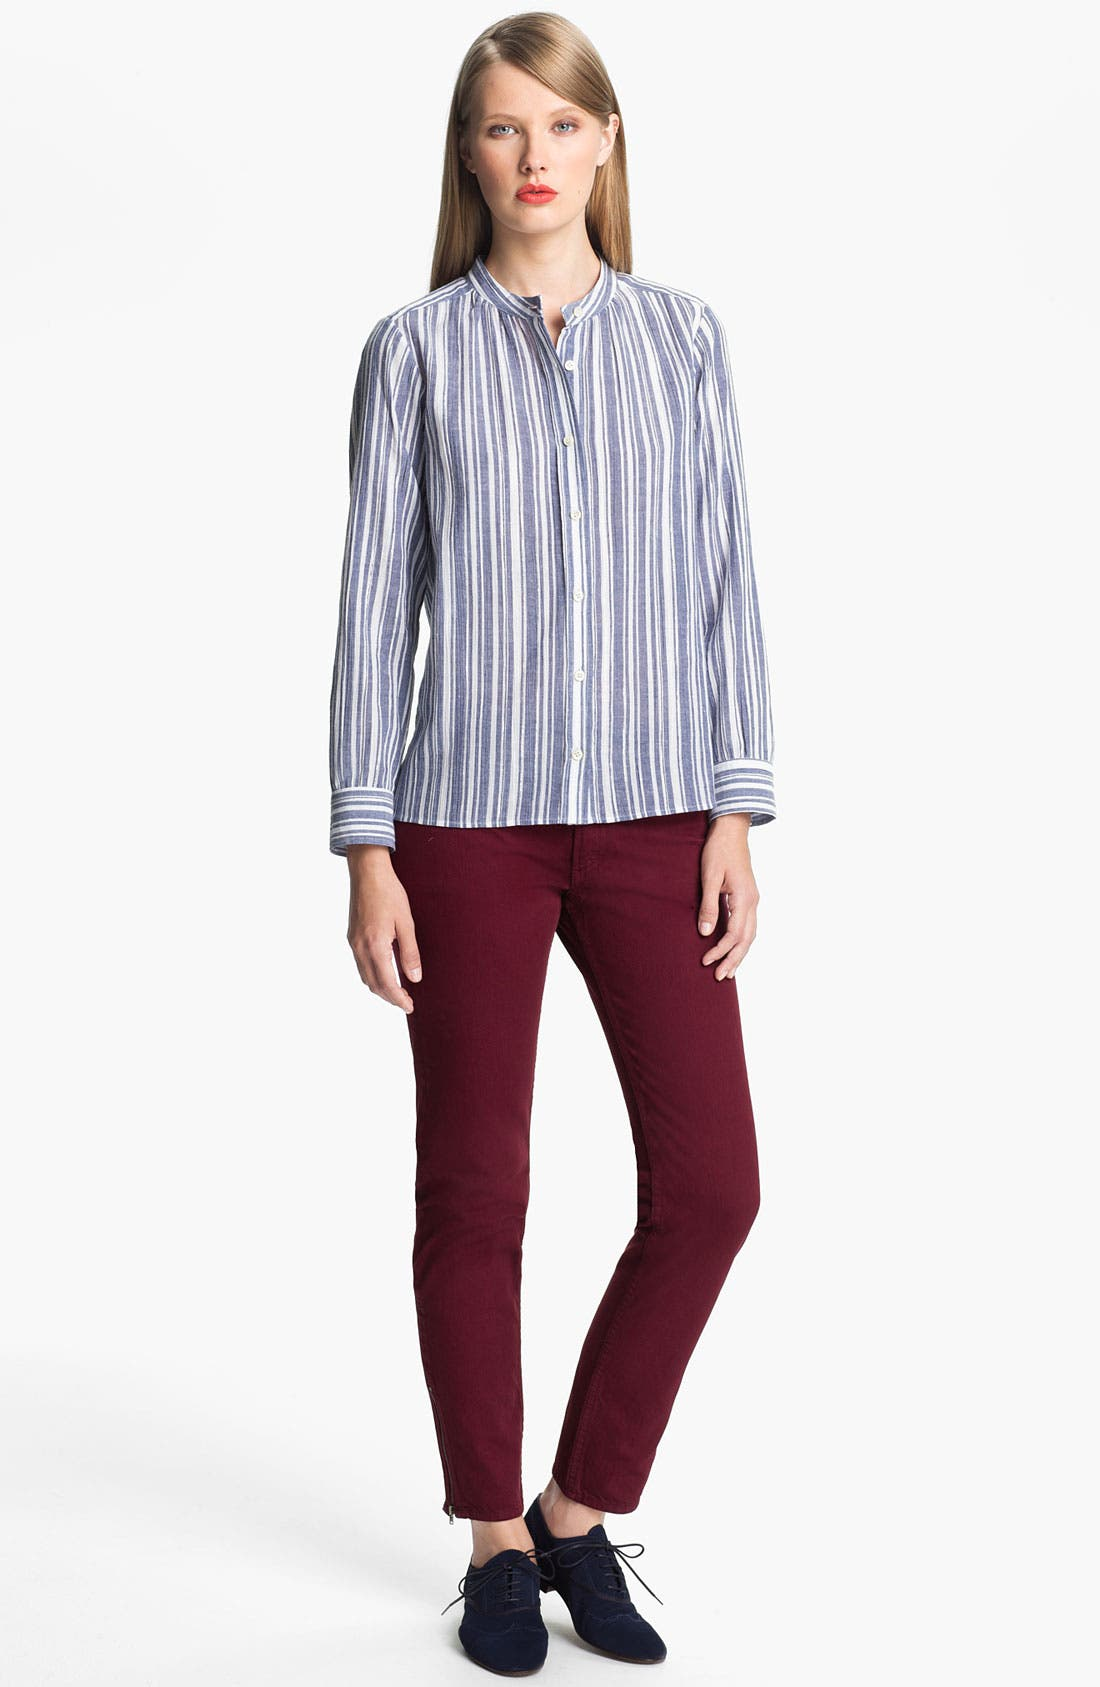 Alternate Image 1 Selected - A.P.C. Metallic Stripe Blouse